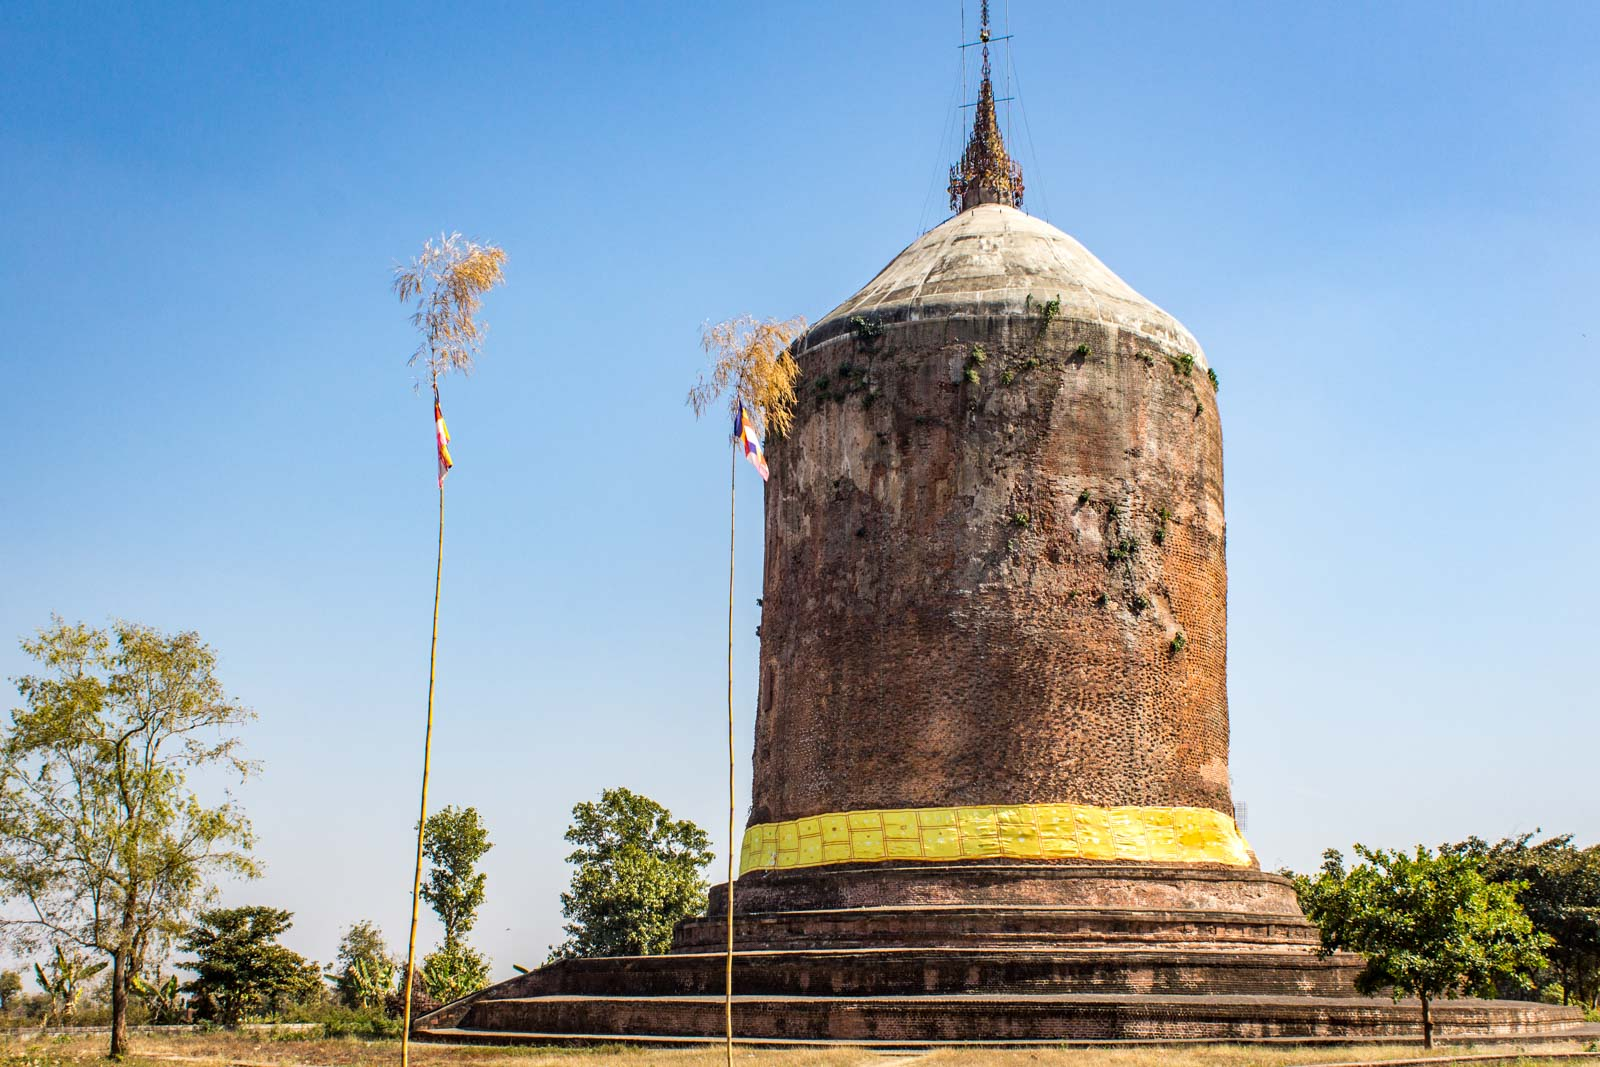 Pyu city Sri Kestra, Pyay, Myanmar, Burma, UNESCO World Heritage in Myanmar